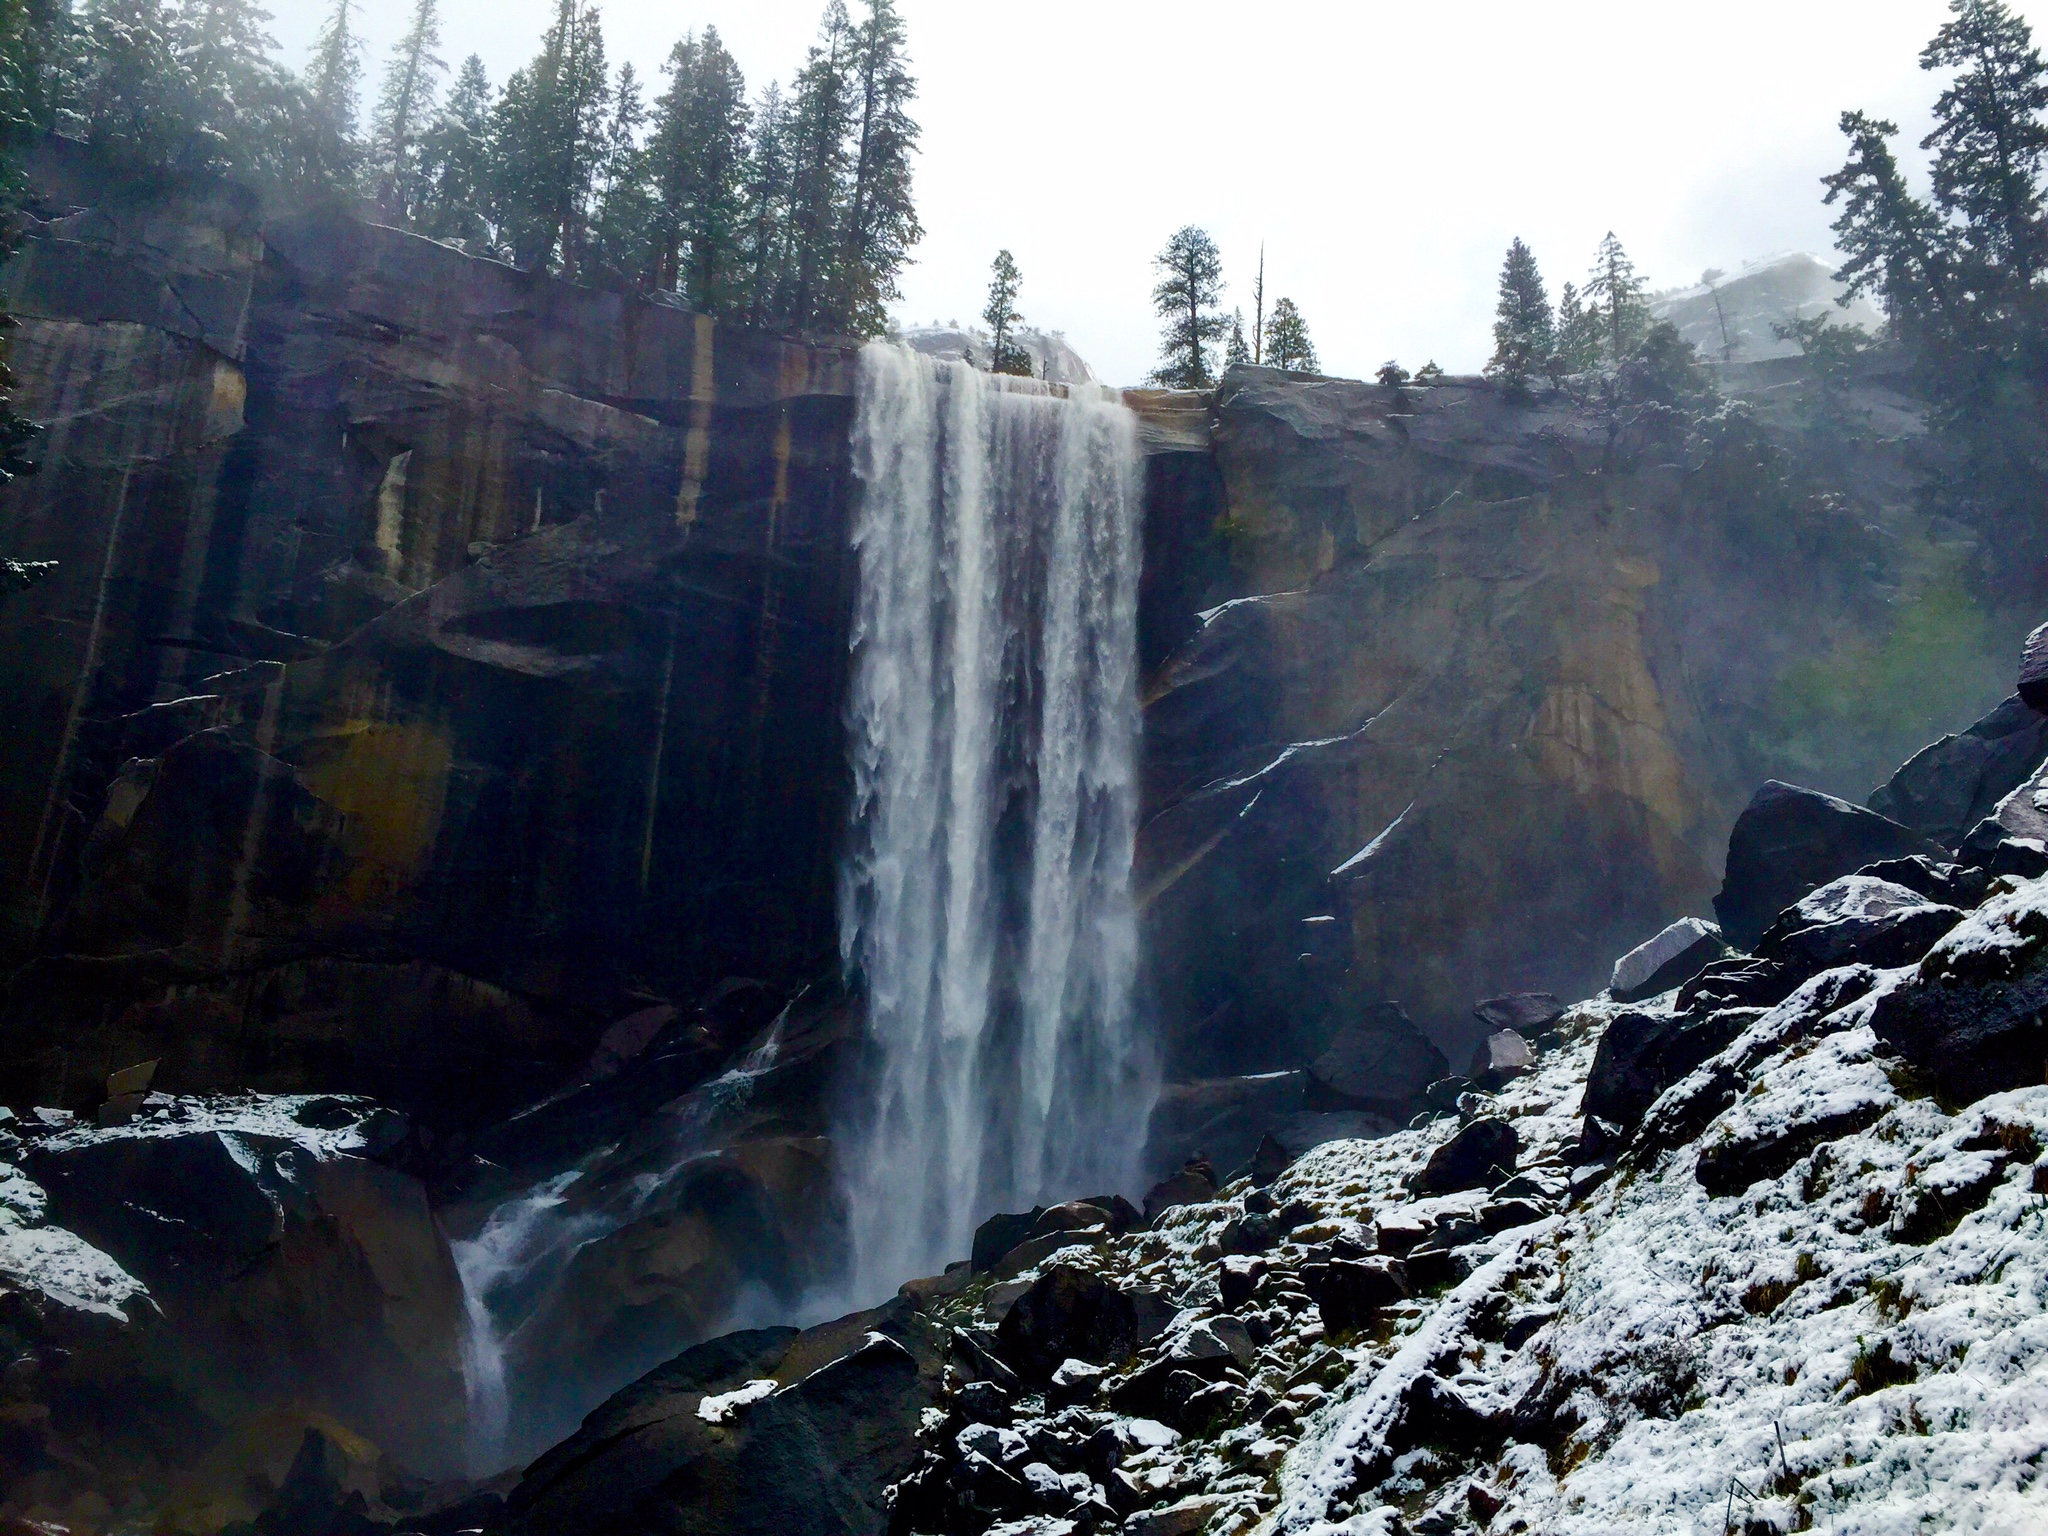 vernal fall, i have stood her nearly a dozen times